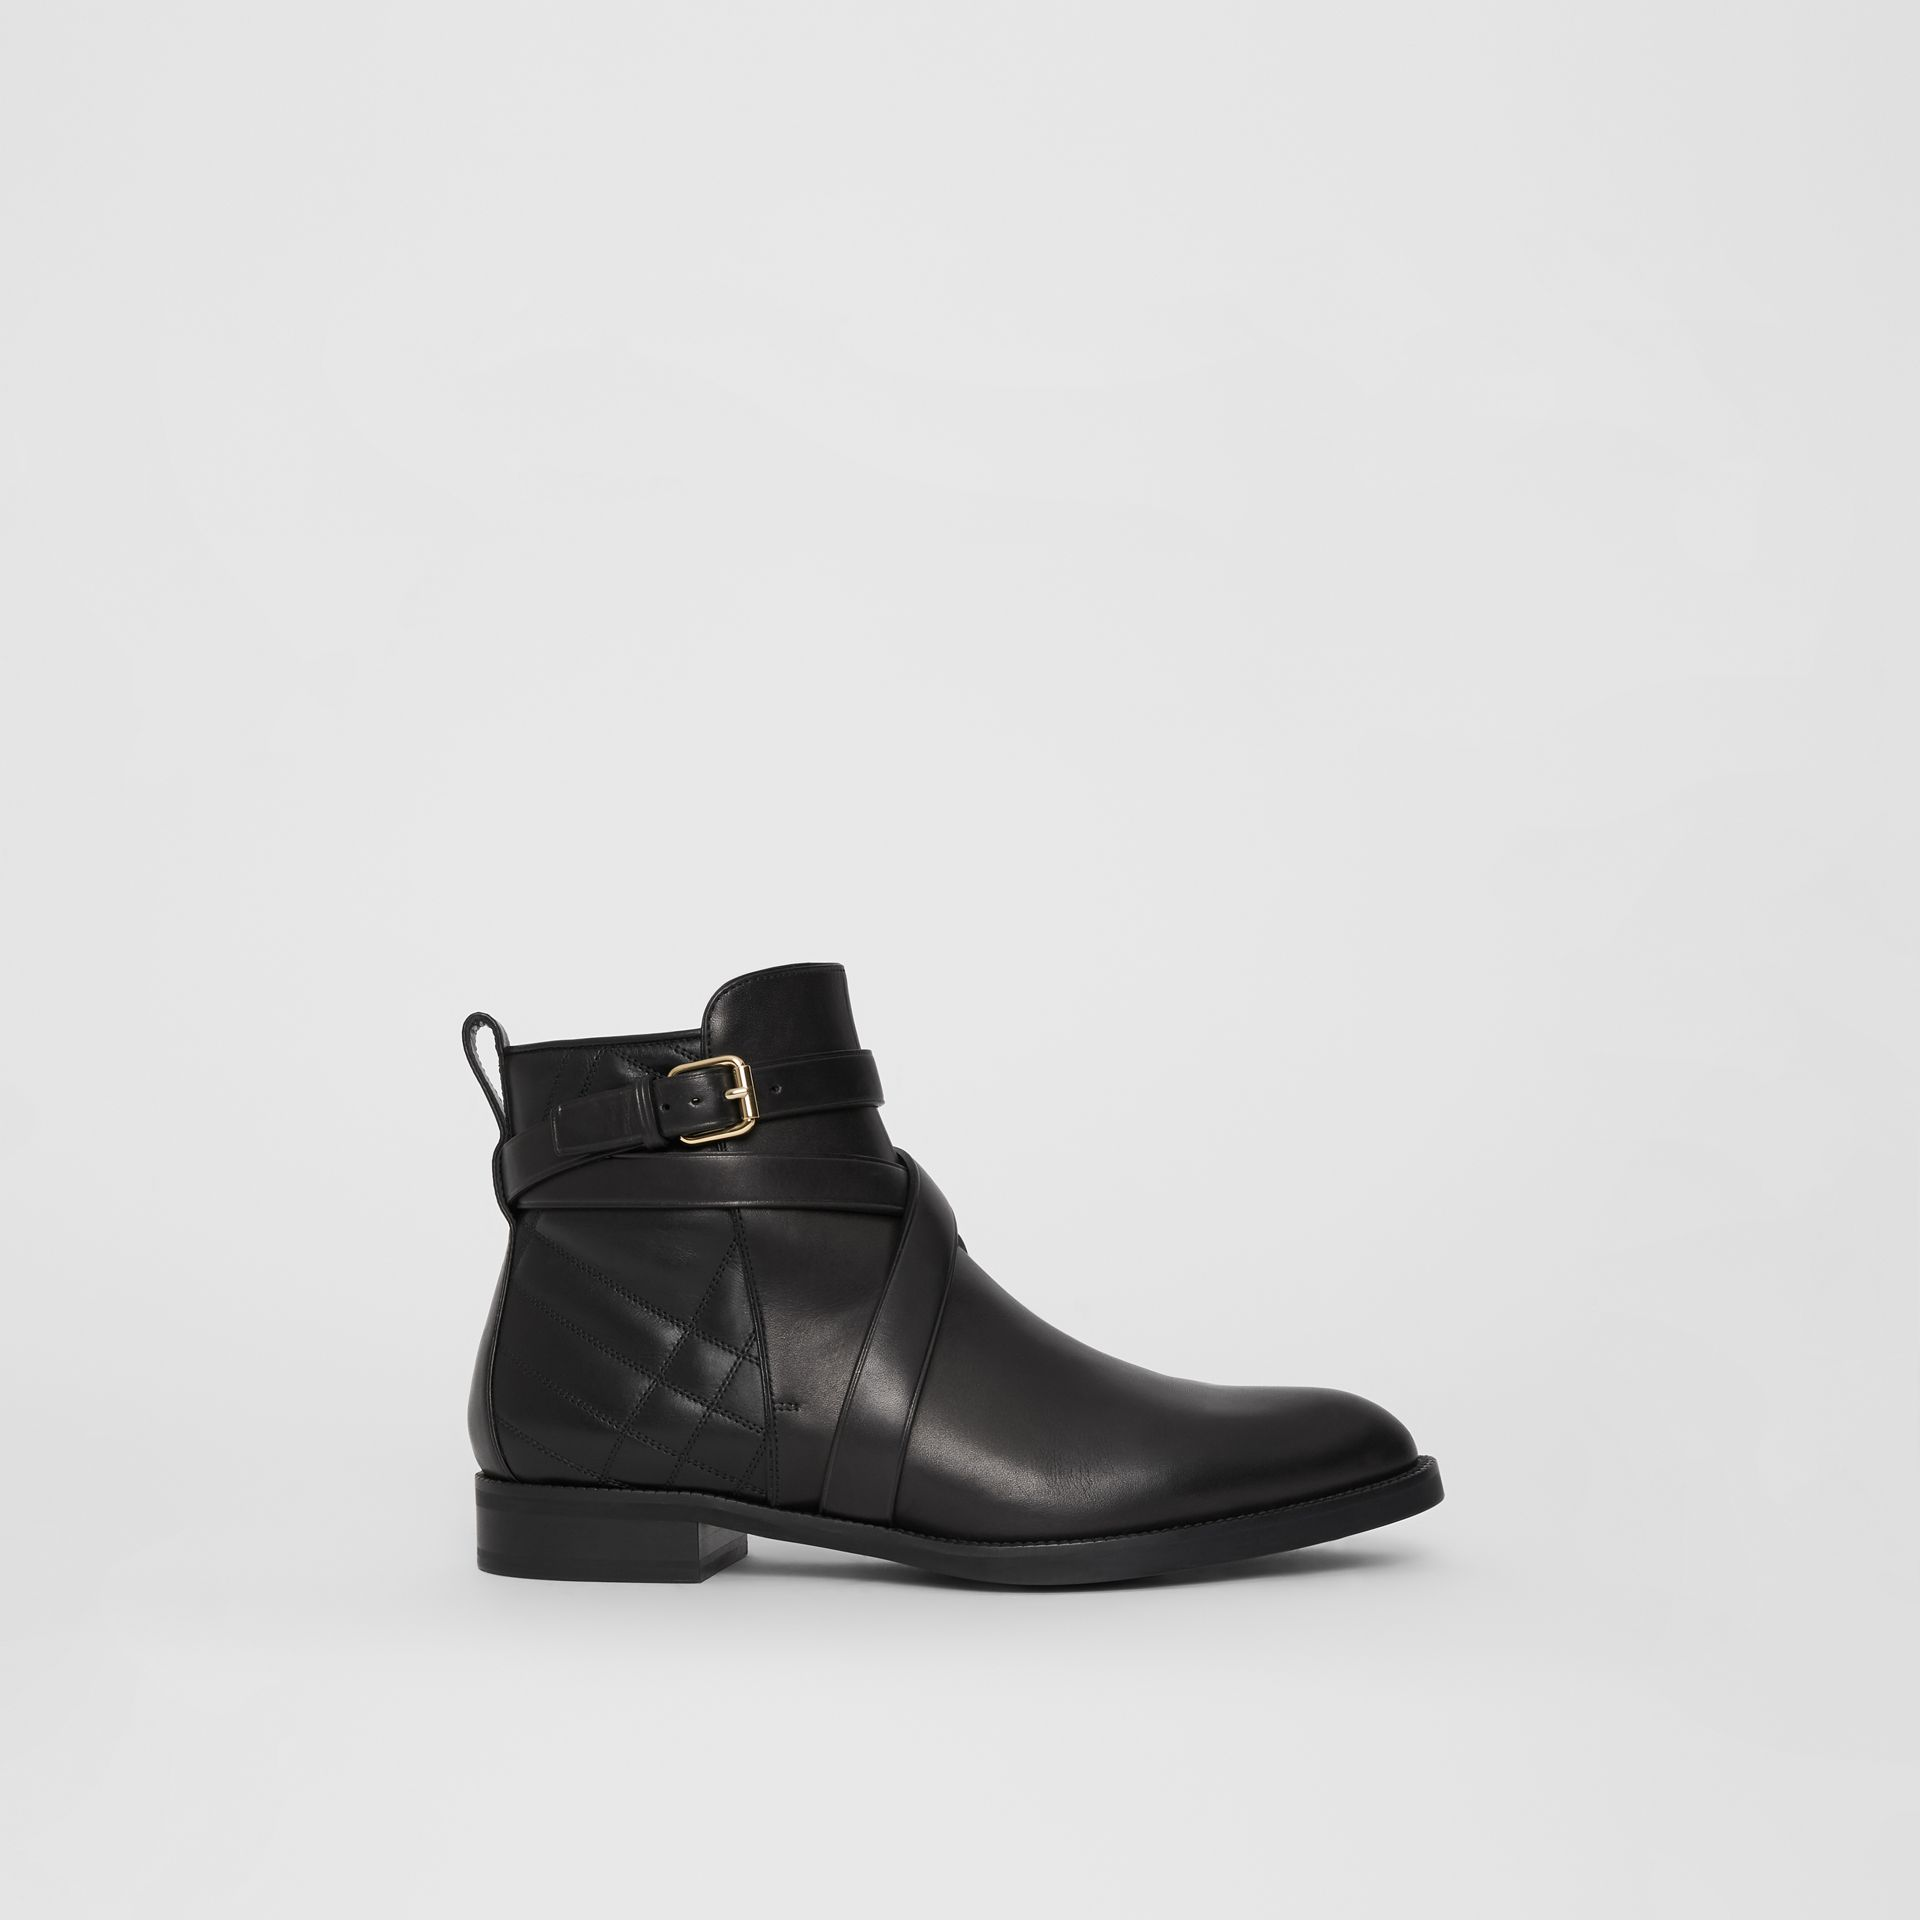 Strap Detail Quilted Leather Ankle Boots in Black - Women | Burberry United Kingdom - gallery image 5